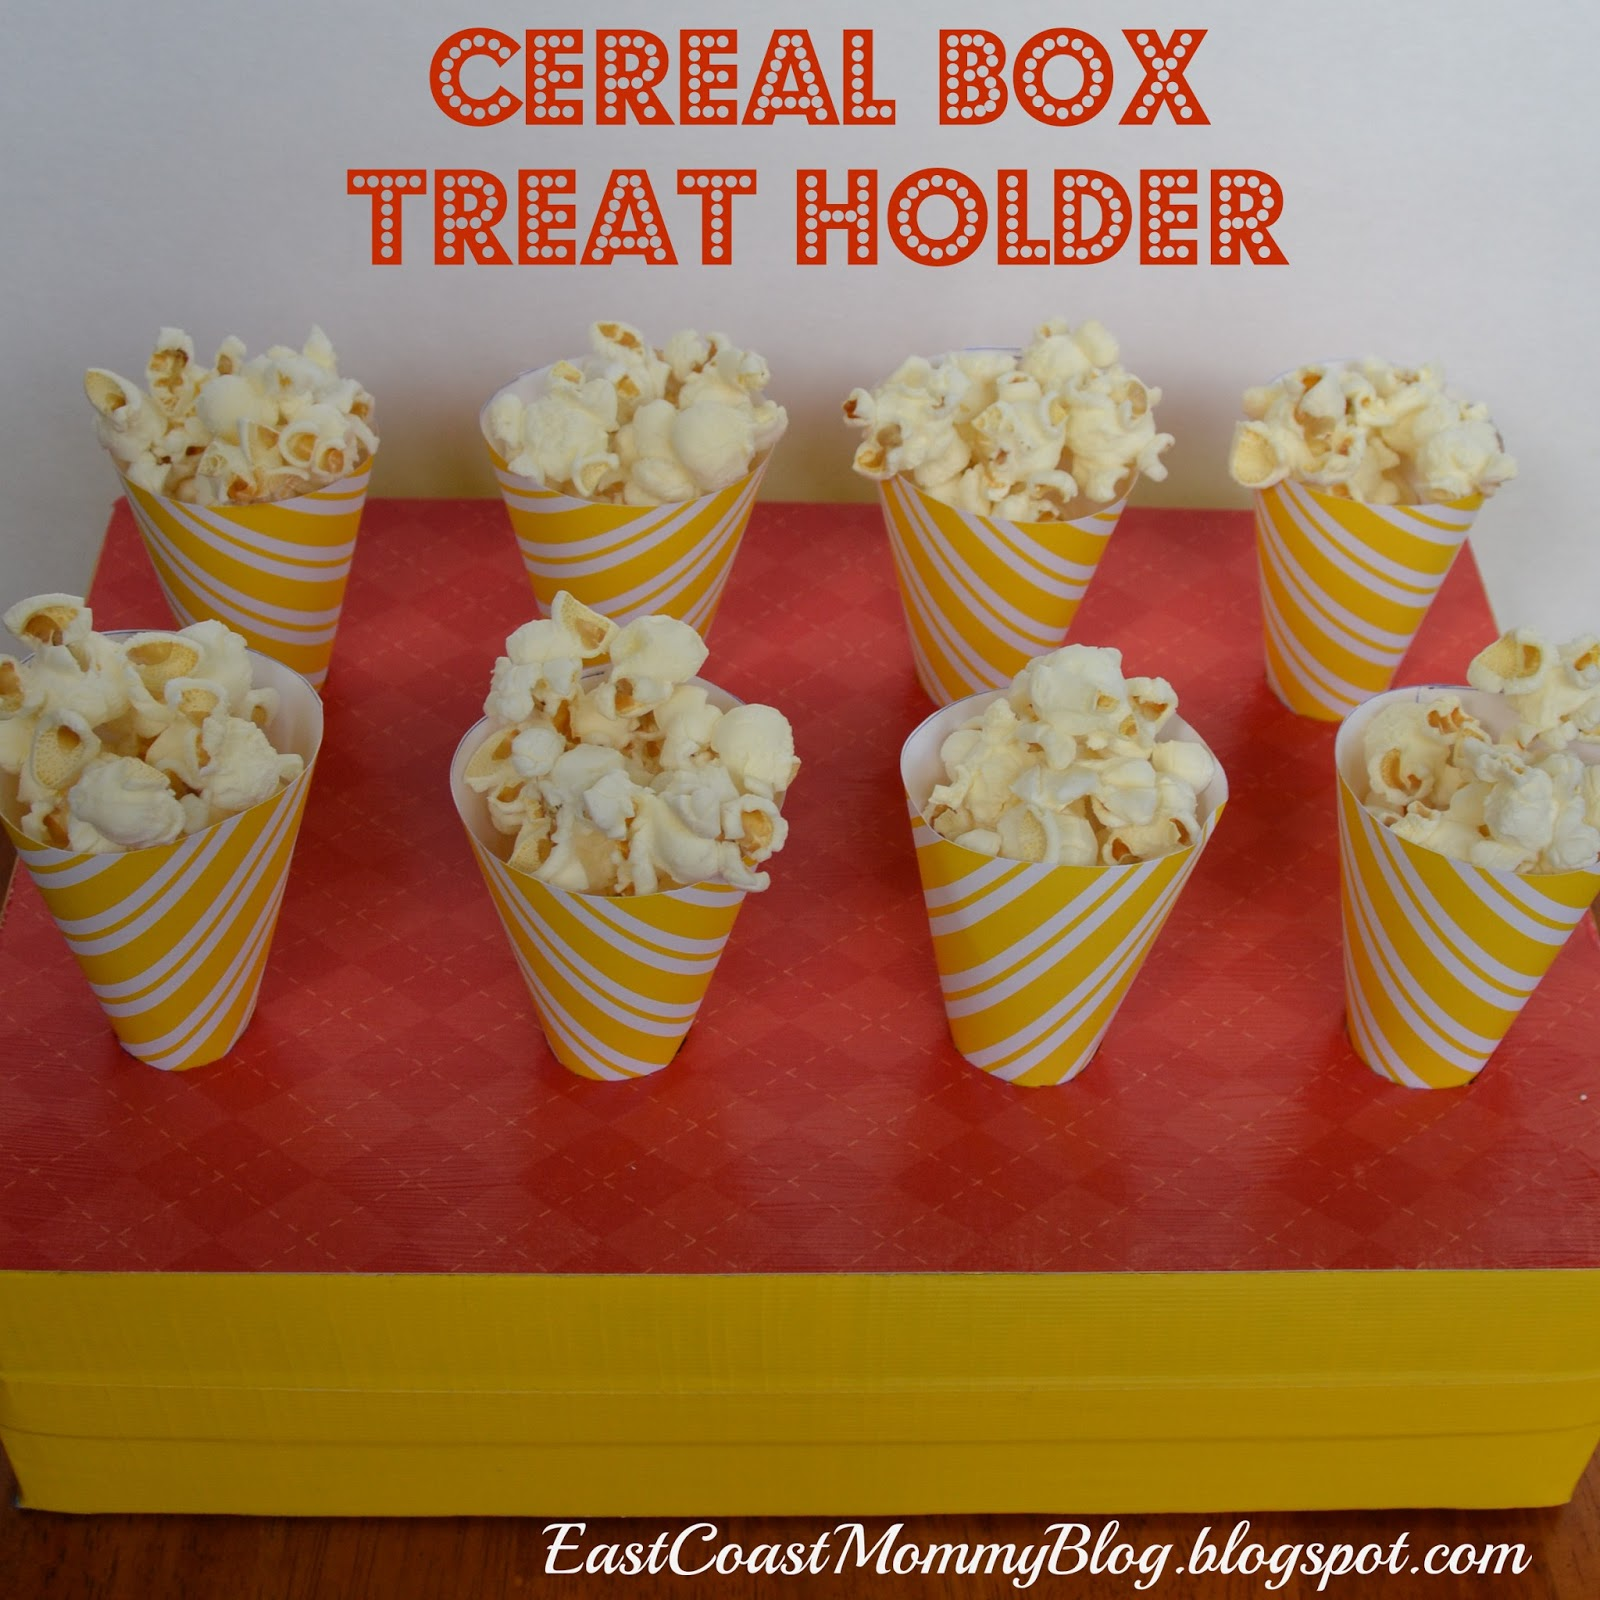 East Coast Mommy Cereal Box Treat Holder